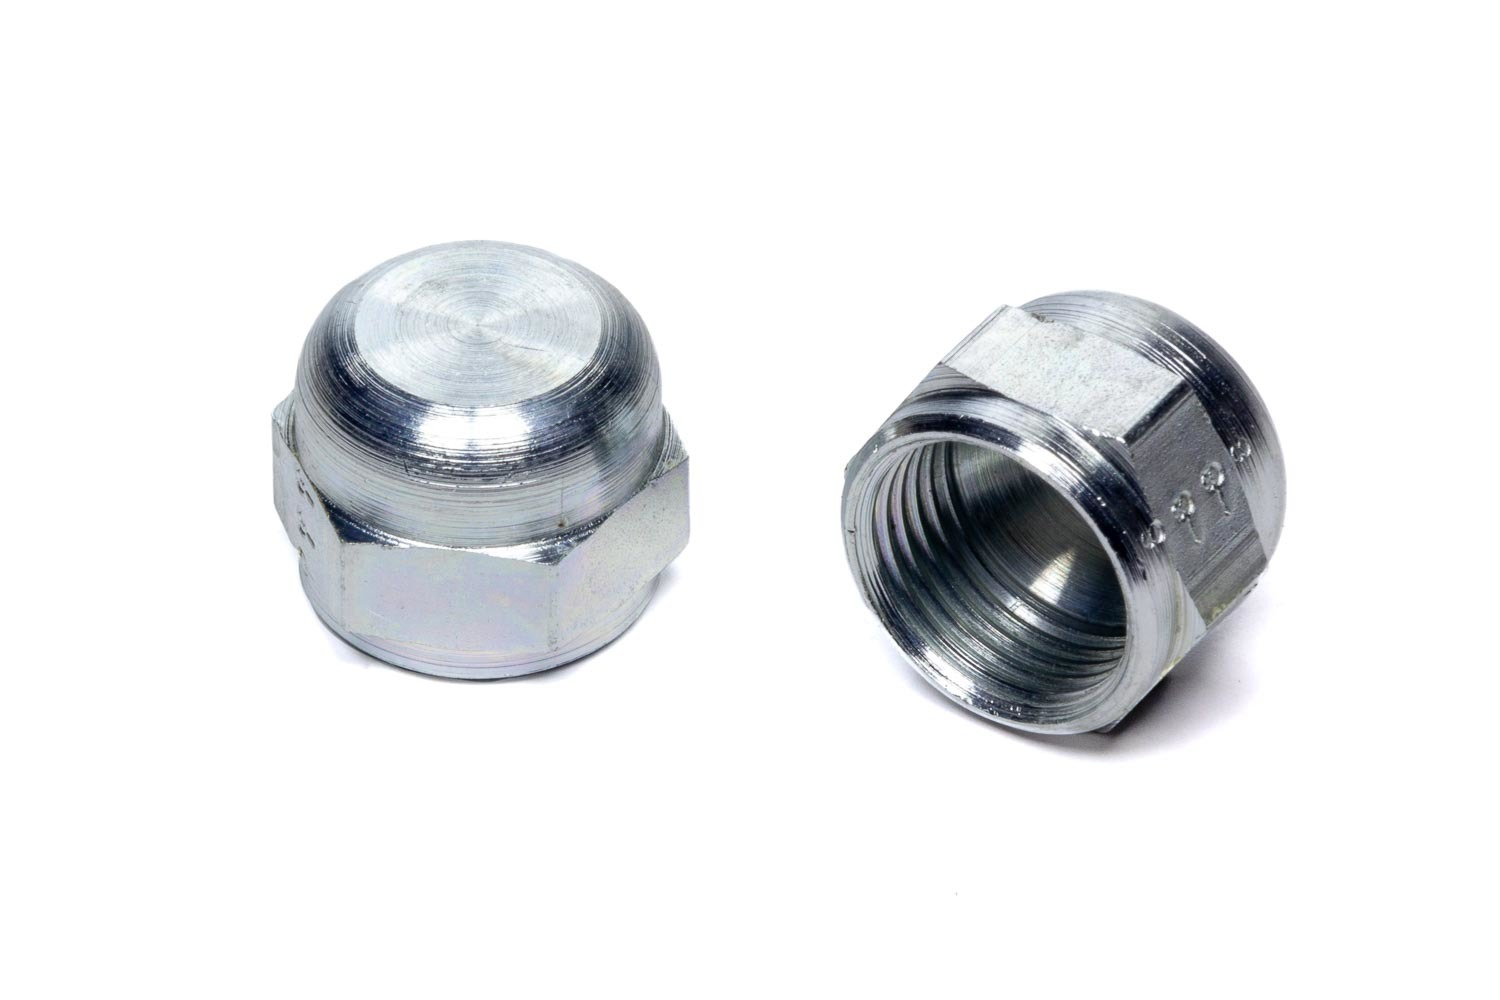 Aeroquip FBM3603 Fitting, Cap, 8 AN, Steel, Zinc Oxide, Pair